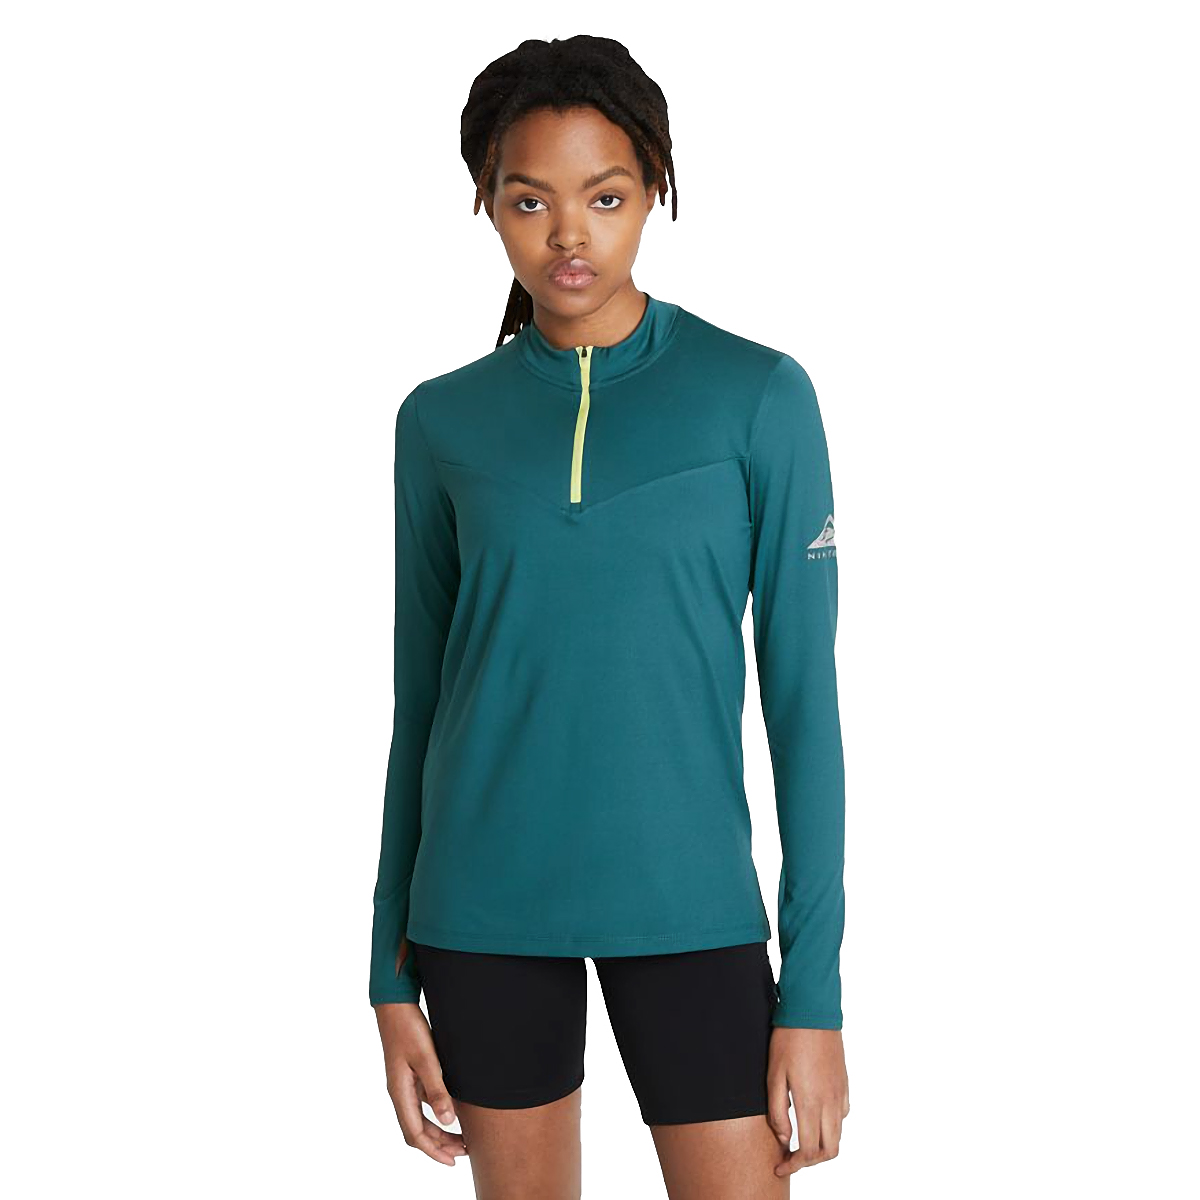 Women's Nike Element Trail Running Midlayer - Color: Dark Teal Green/Reflective Silver - Size: XS, Dark Teal Green/Reflective Silver, large, image 1